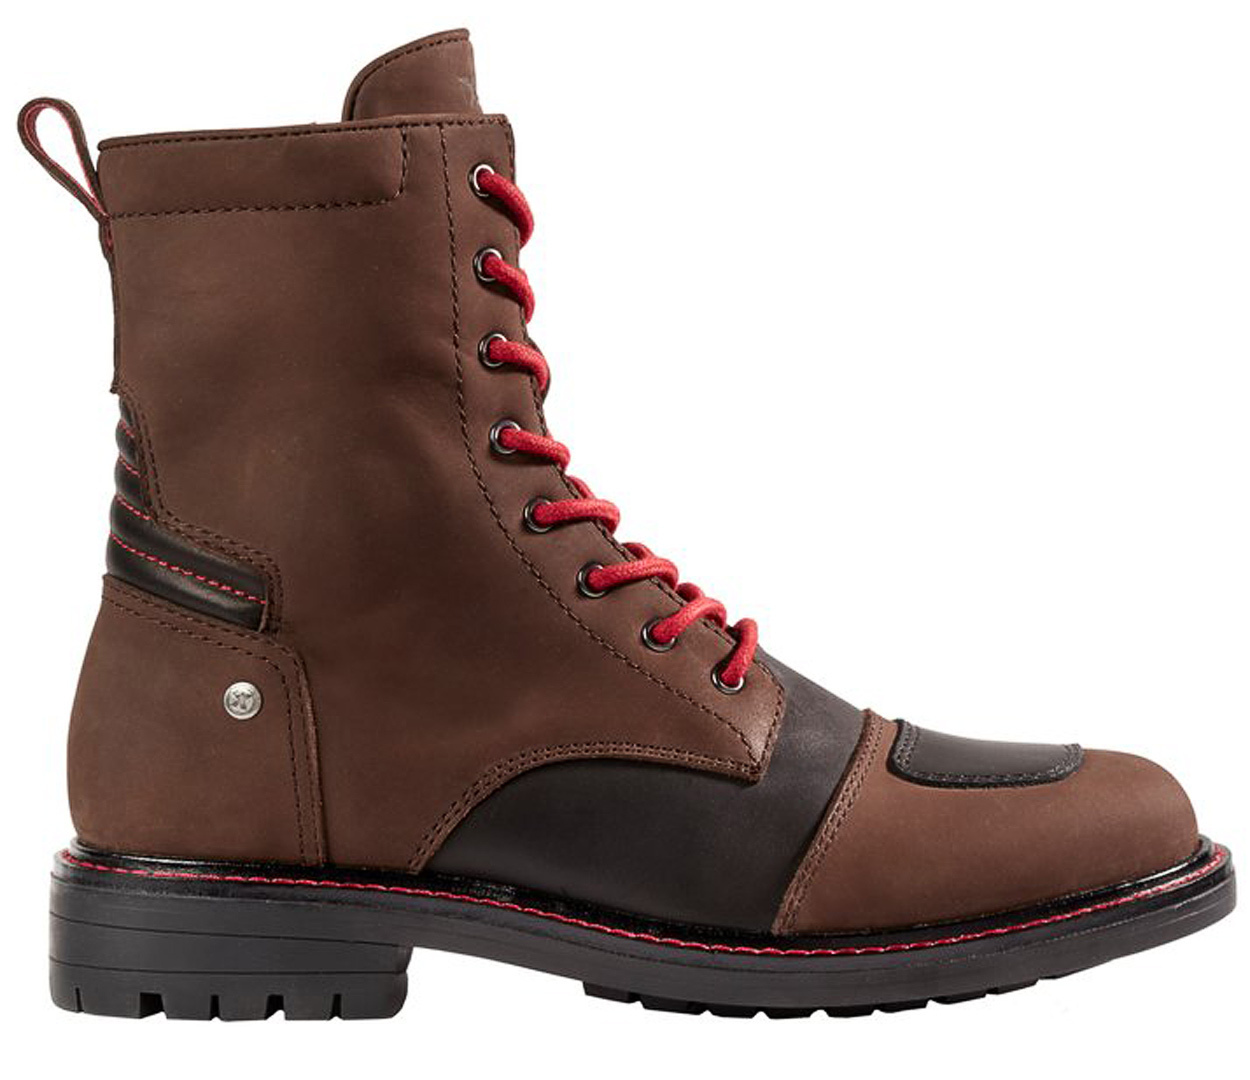 XPD X-Goodwood Stiefel S93-414-41